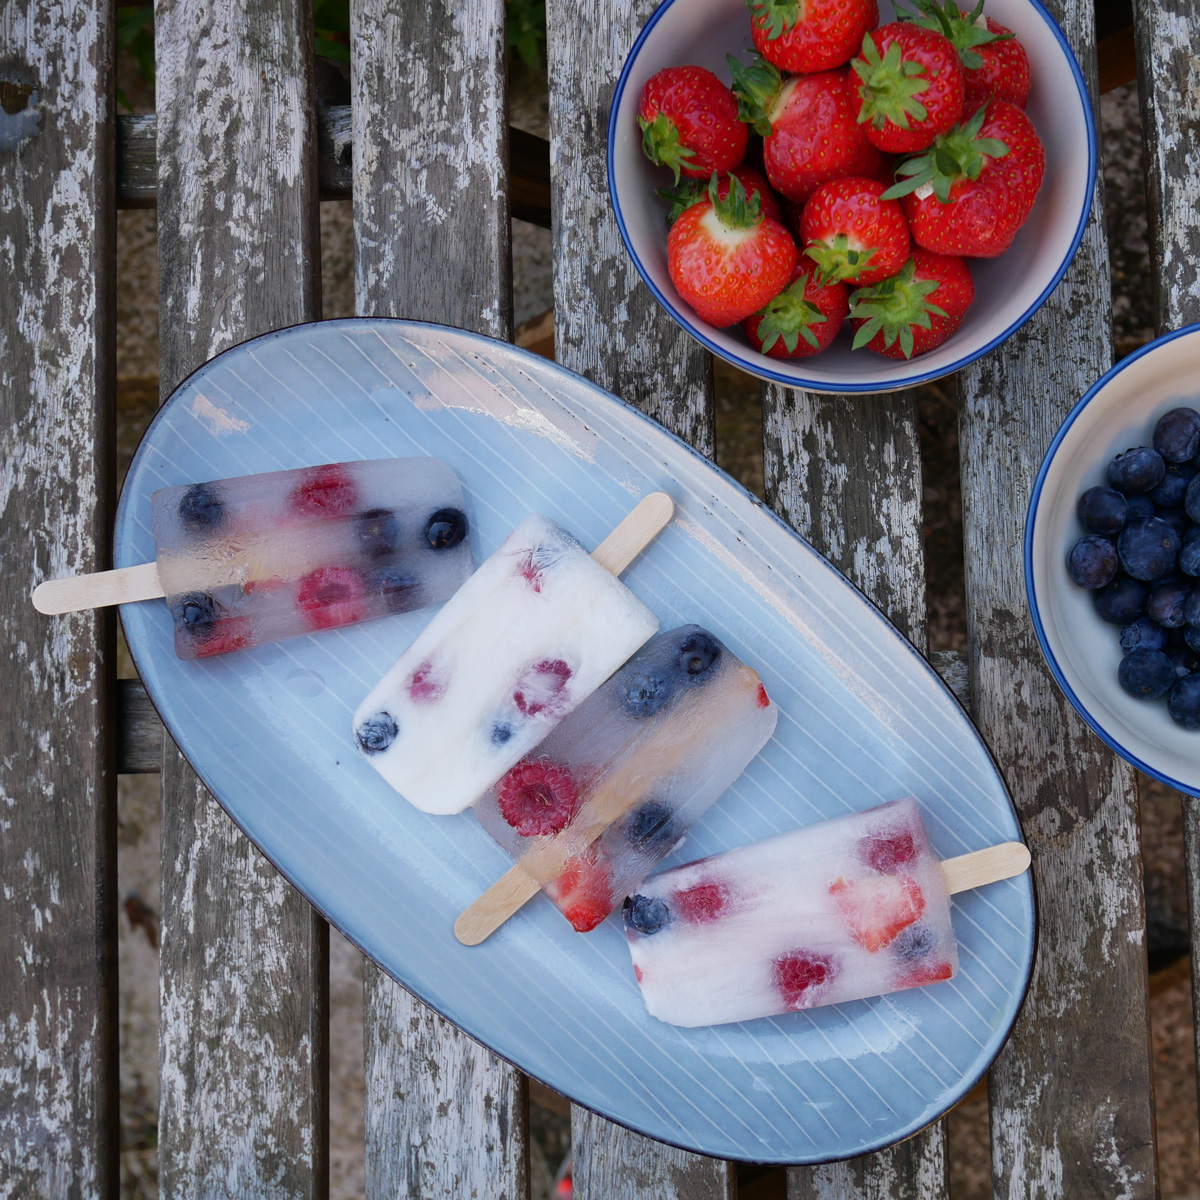 Nordic-Sea-Oval-Large-Serving-Plate-with-coconut-ice-lollies